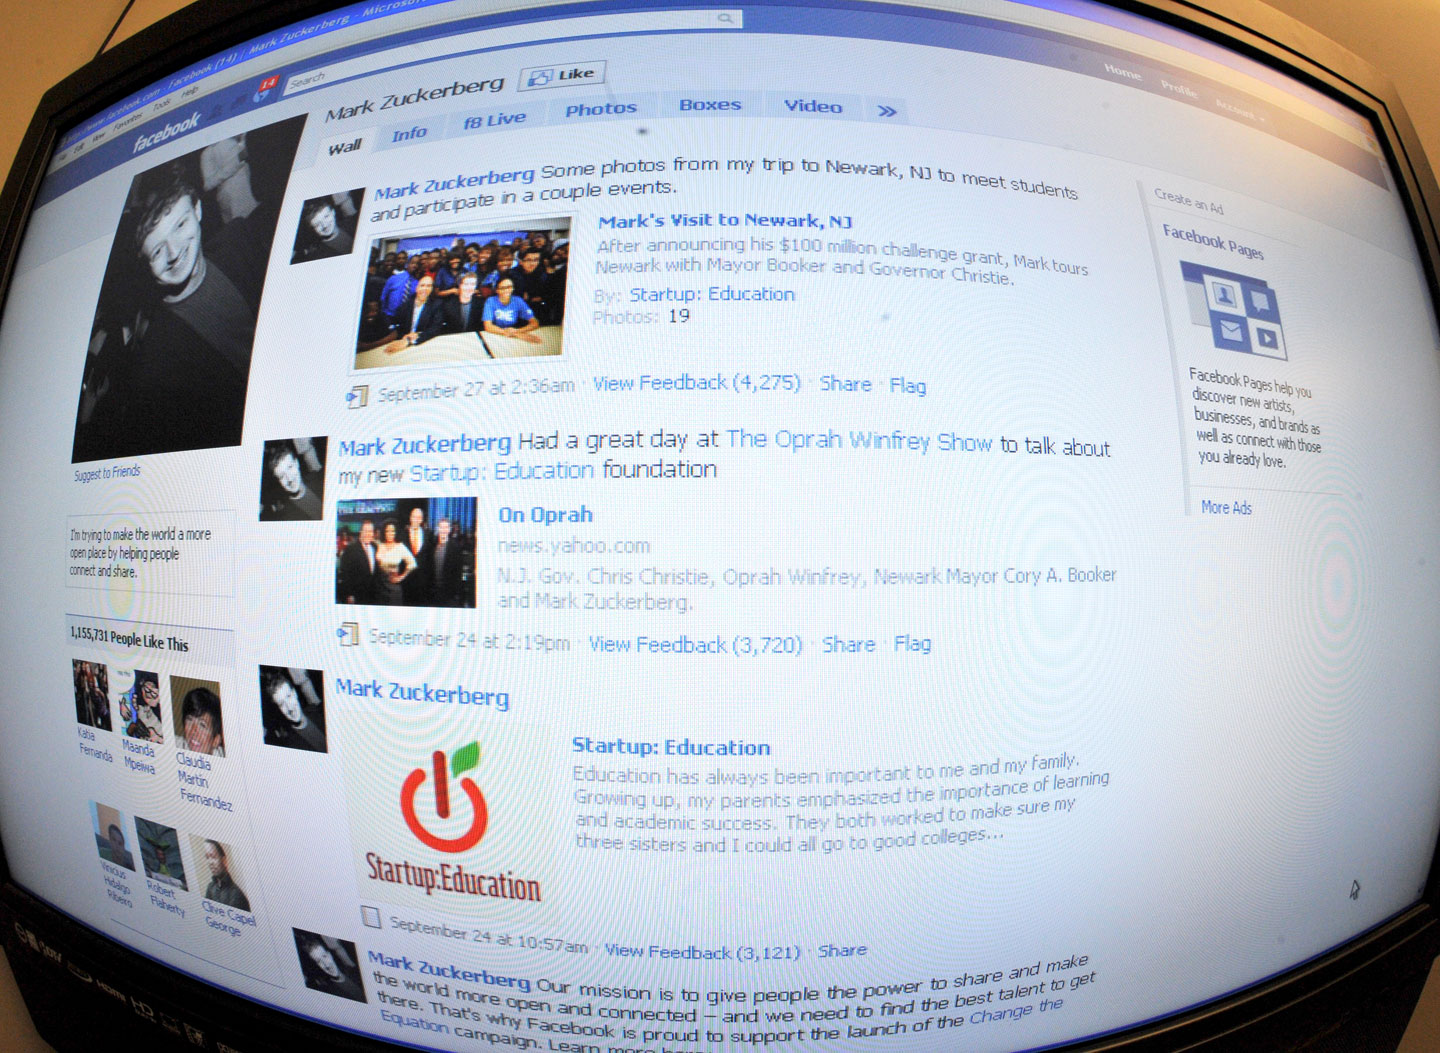 Why should or should not the Credit Union use myspace, facebook, or other social media outlets?